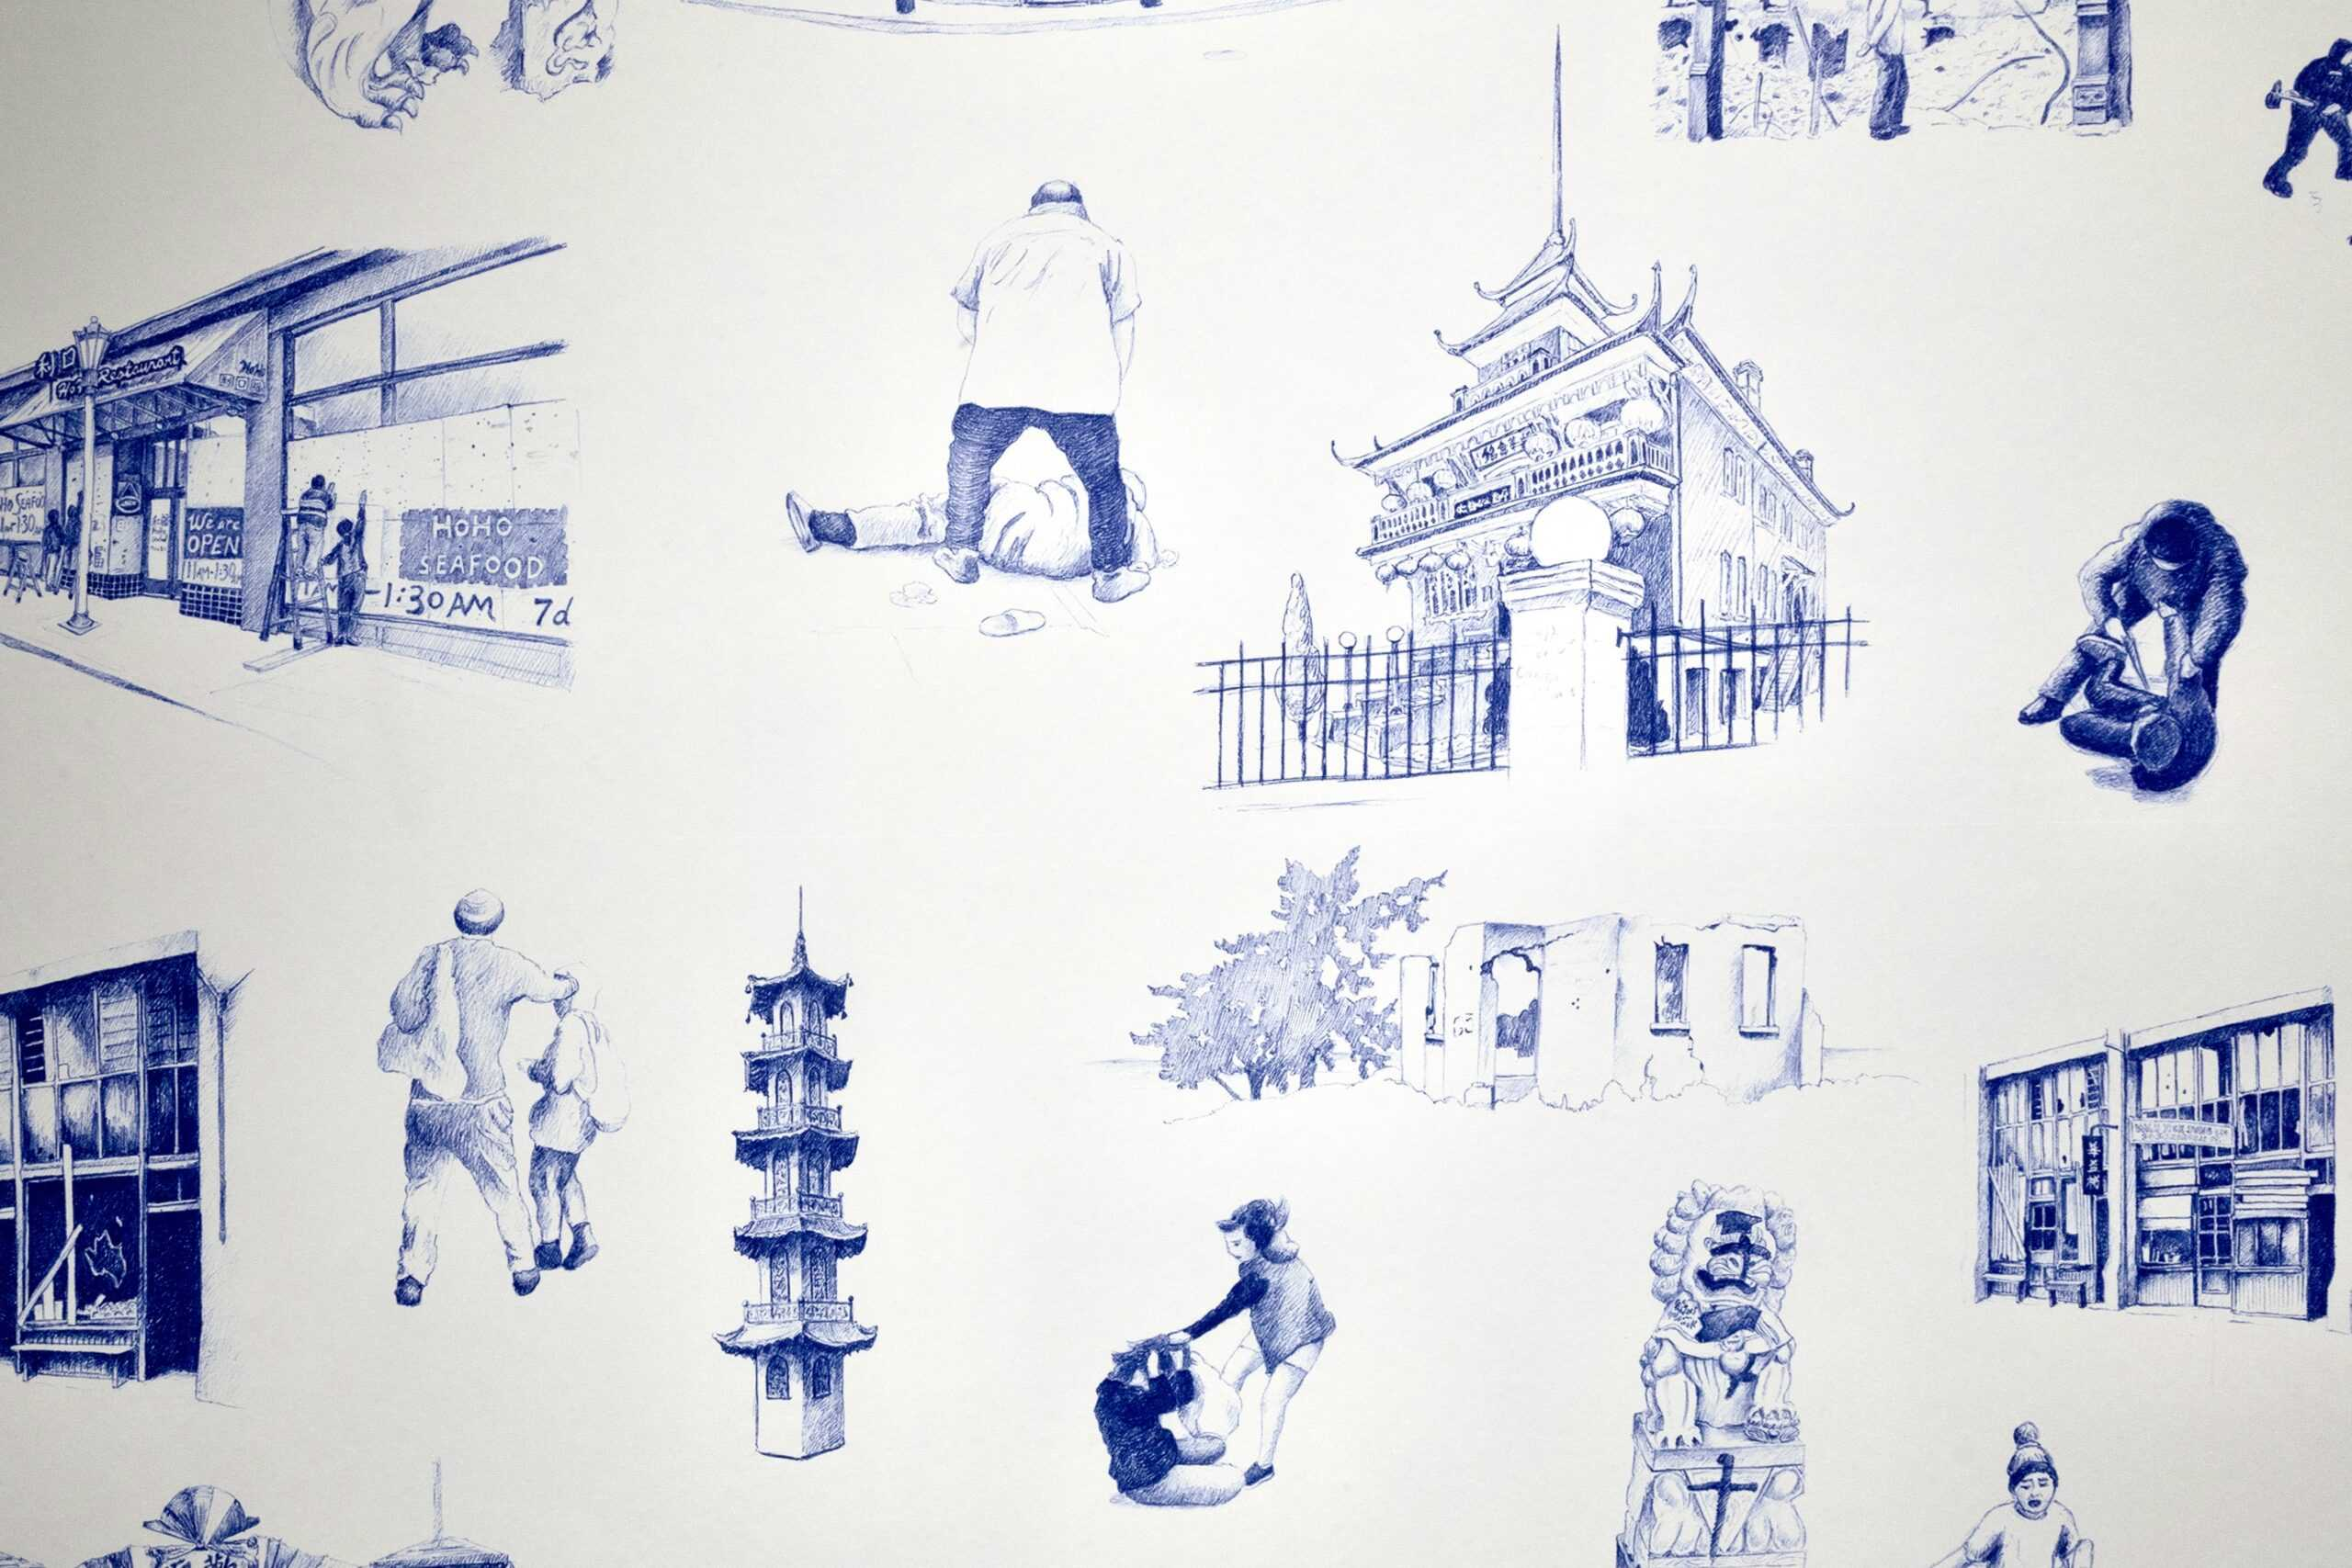 """Details from Karen Tam's """"Ruinscape"""" wallpaper. Blue and white drawings of various places and (violent) interactions in Chinatown."""